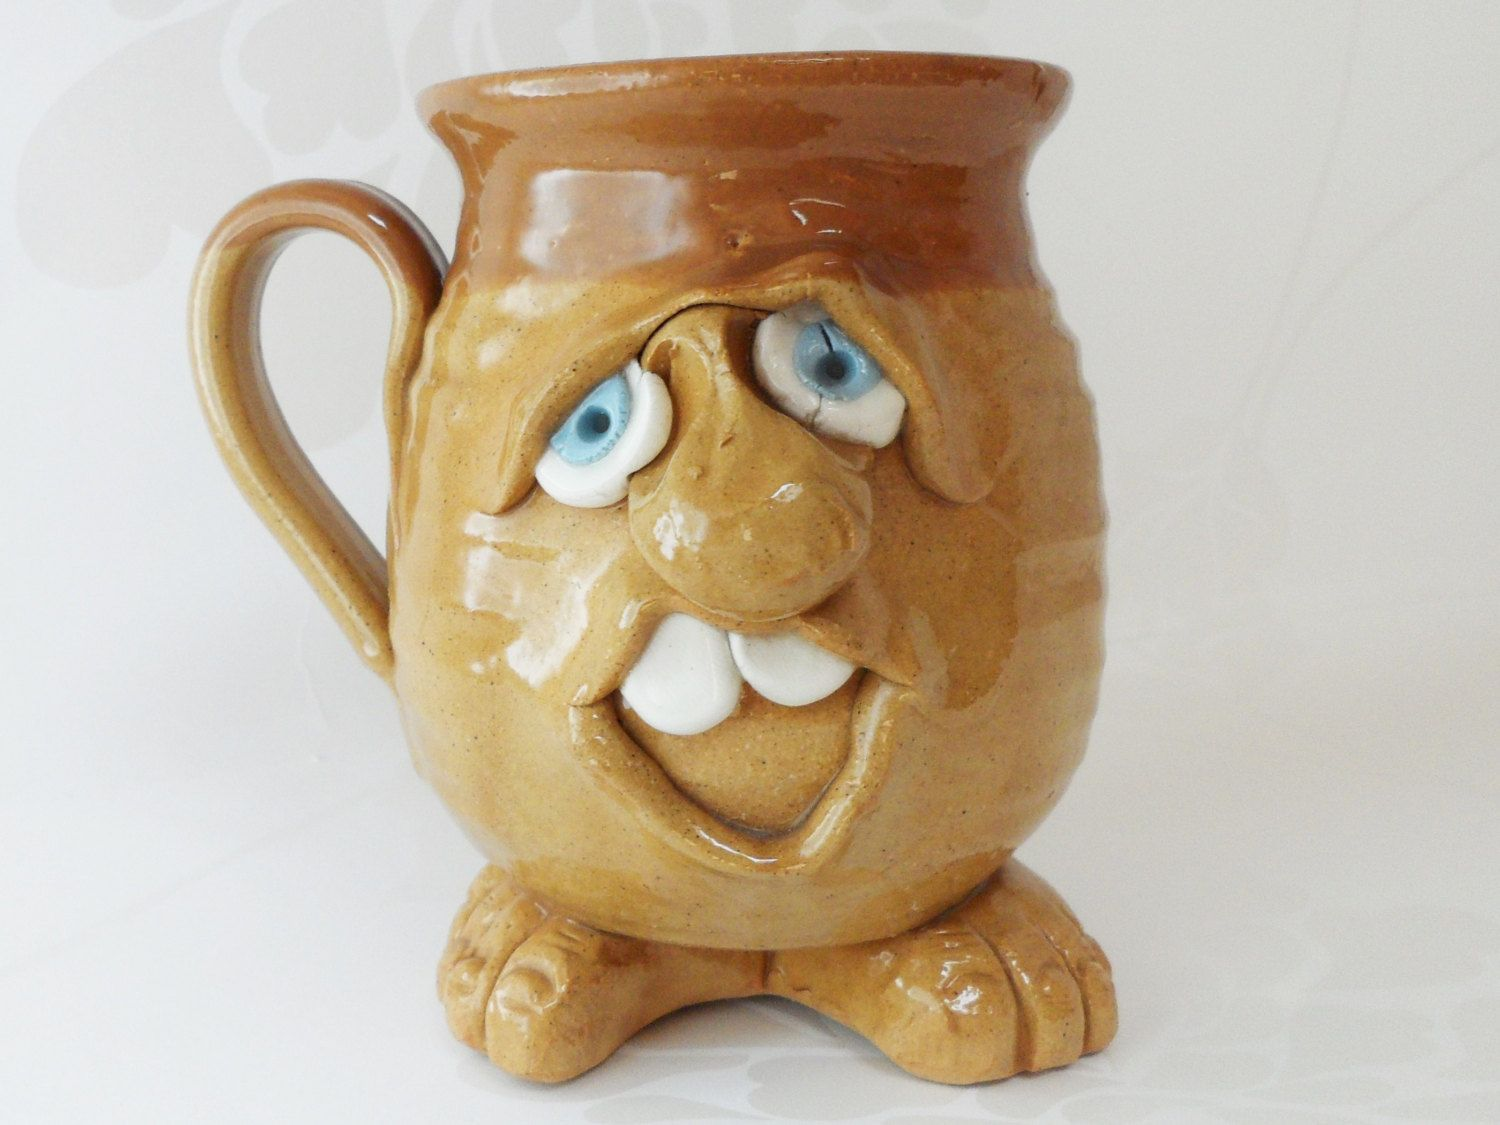 Weird Mugs Coffee Mug Ugly Pottery Style Unusual Blue Eyed Footed